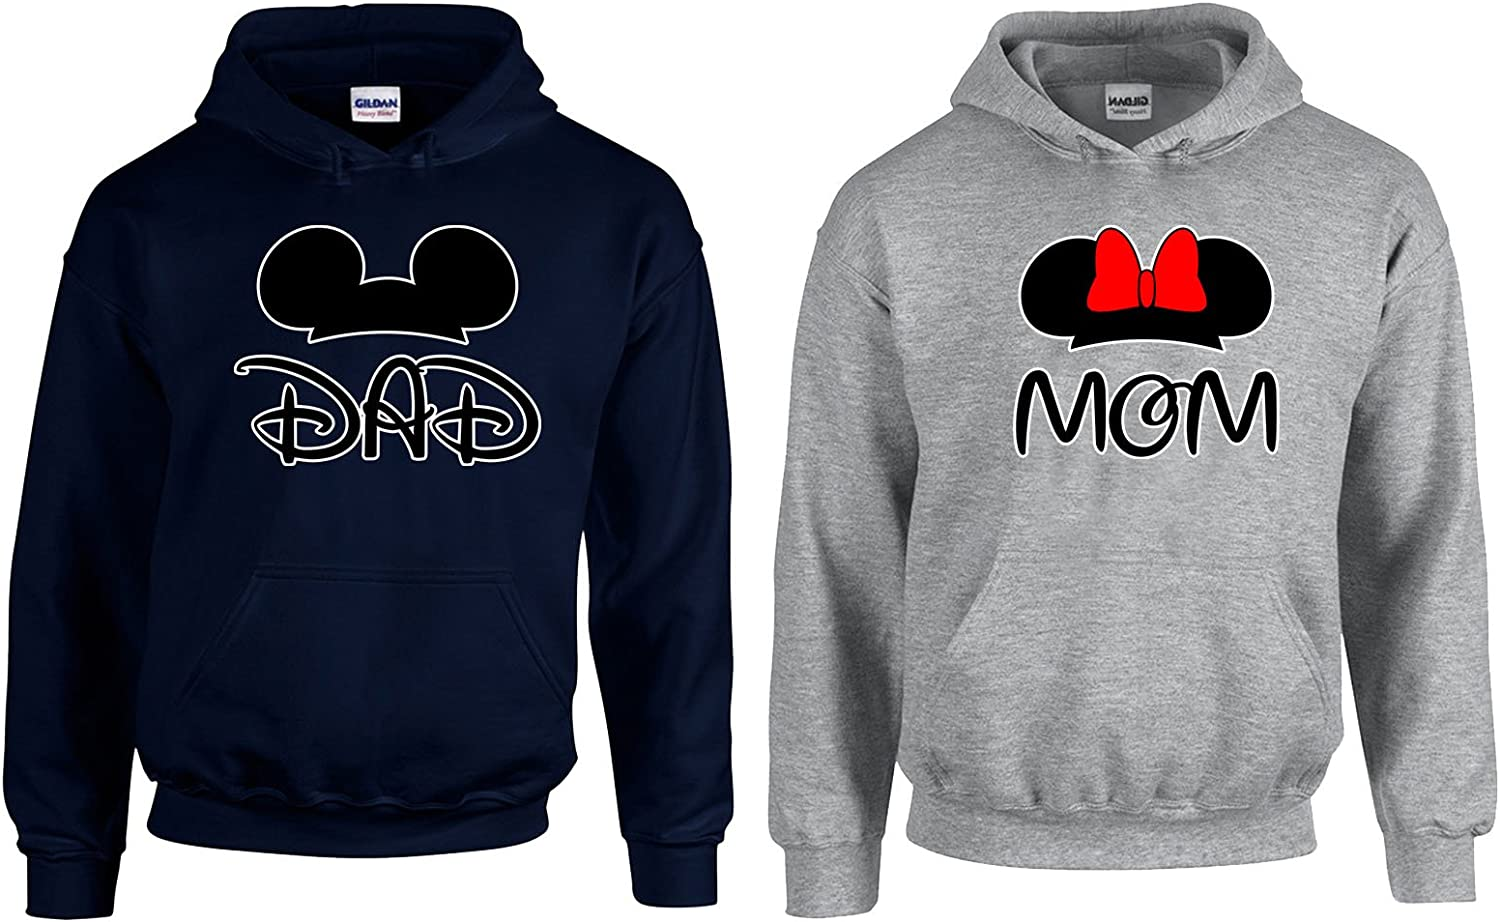 CAMALEN Mickey Dad Minnie Mom Couple Most Popular Hoodie Hooded Sweatshirt 2